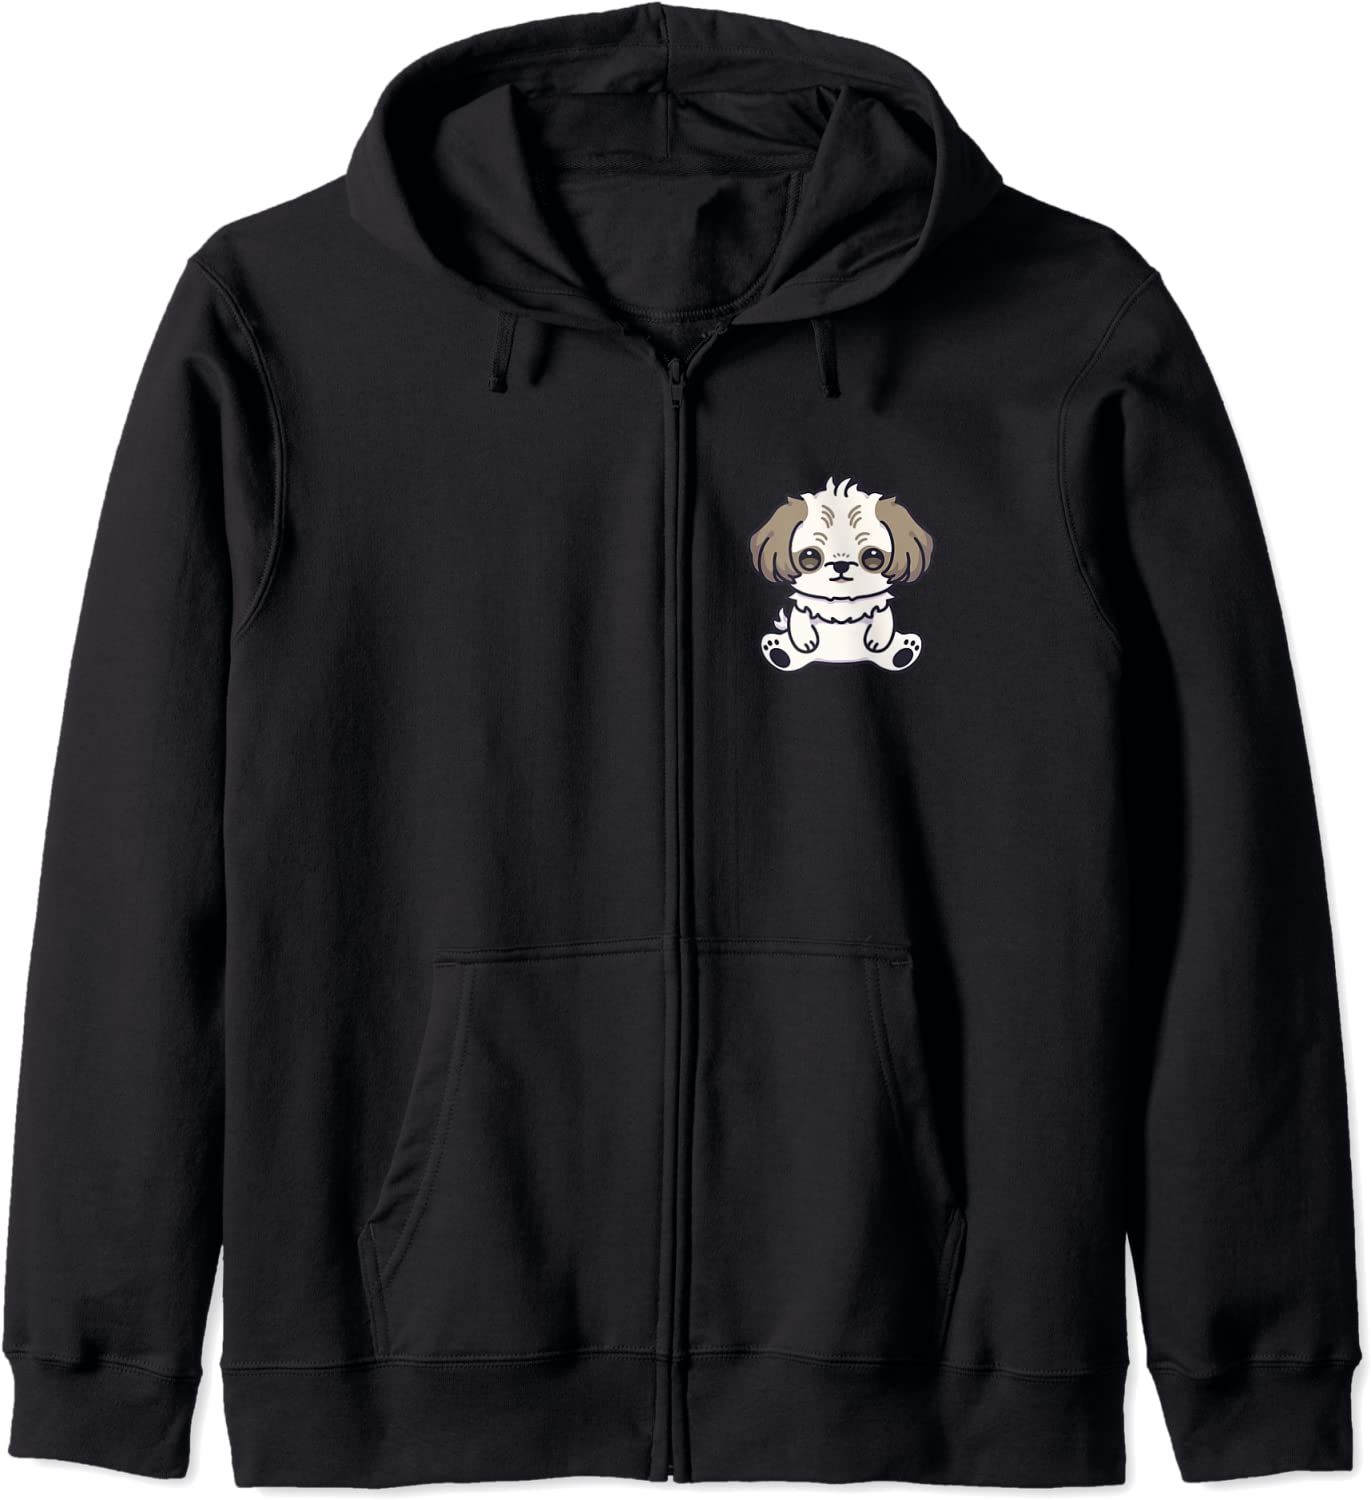 Shih Tzu 35% OFF Dog Cute Kawaii Lover Owner Anime Puppy Aesthetic H Zip Indianapolis Mall